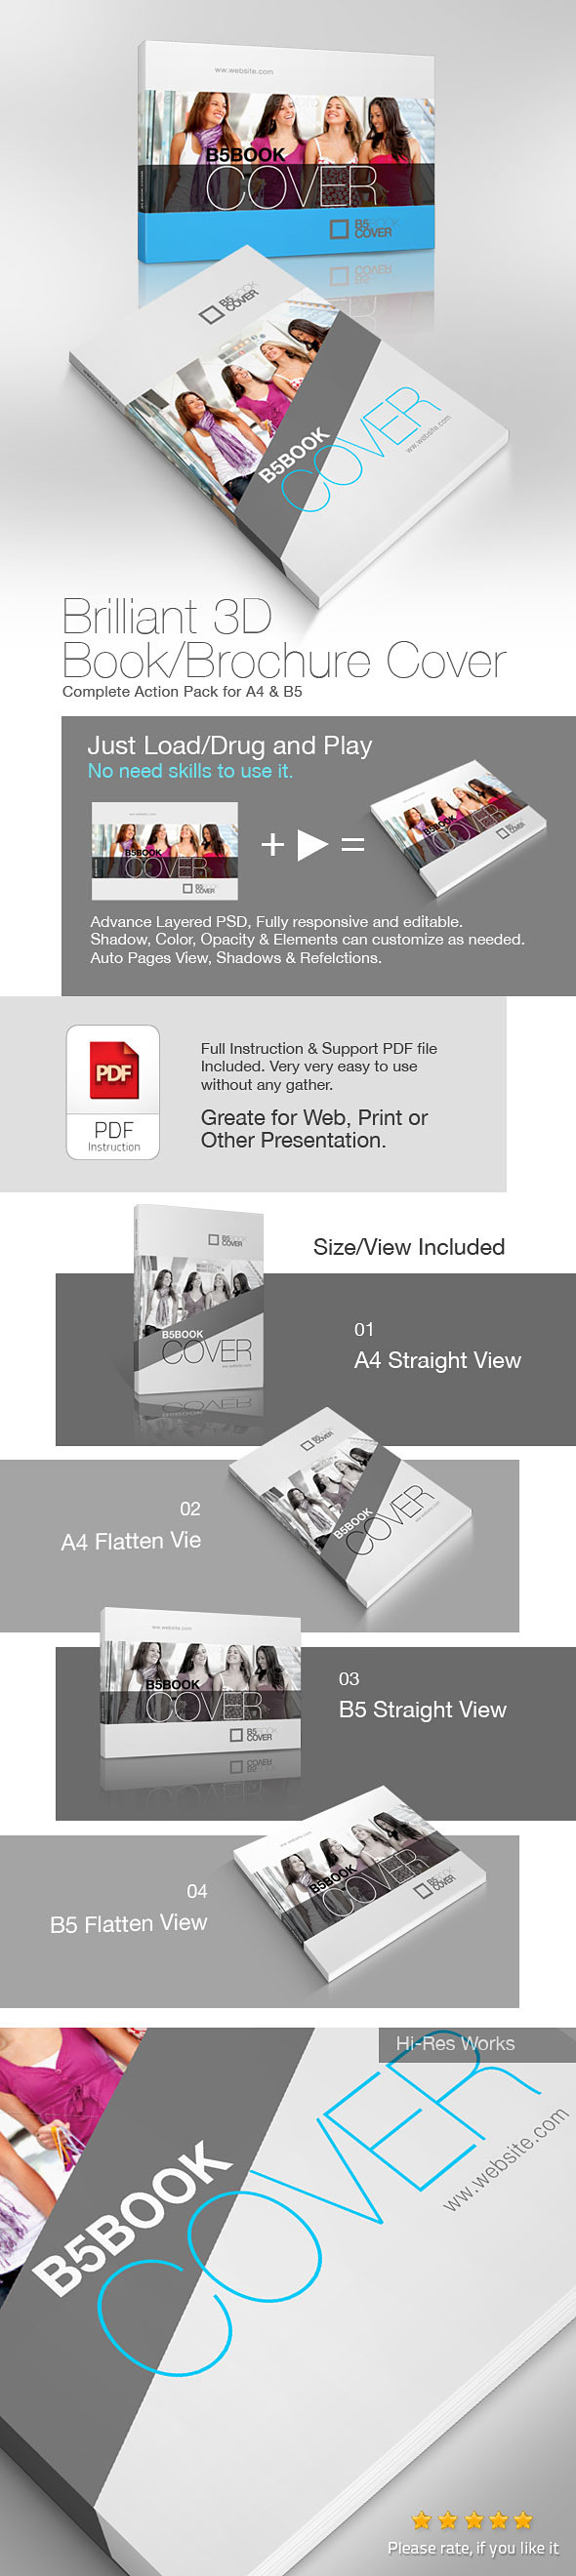 3D Book/Brochure Cover Action